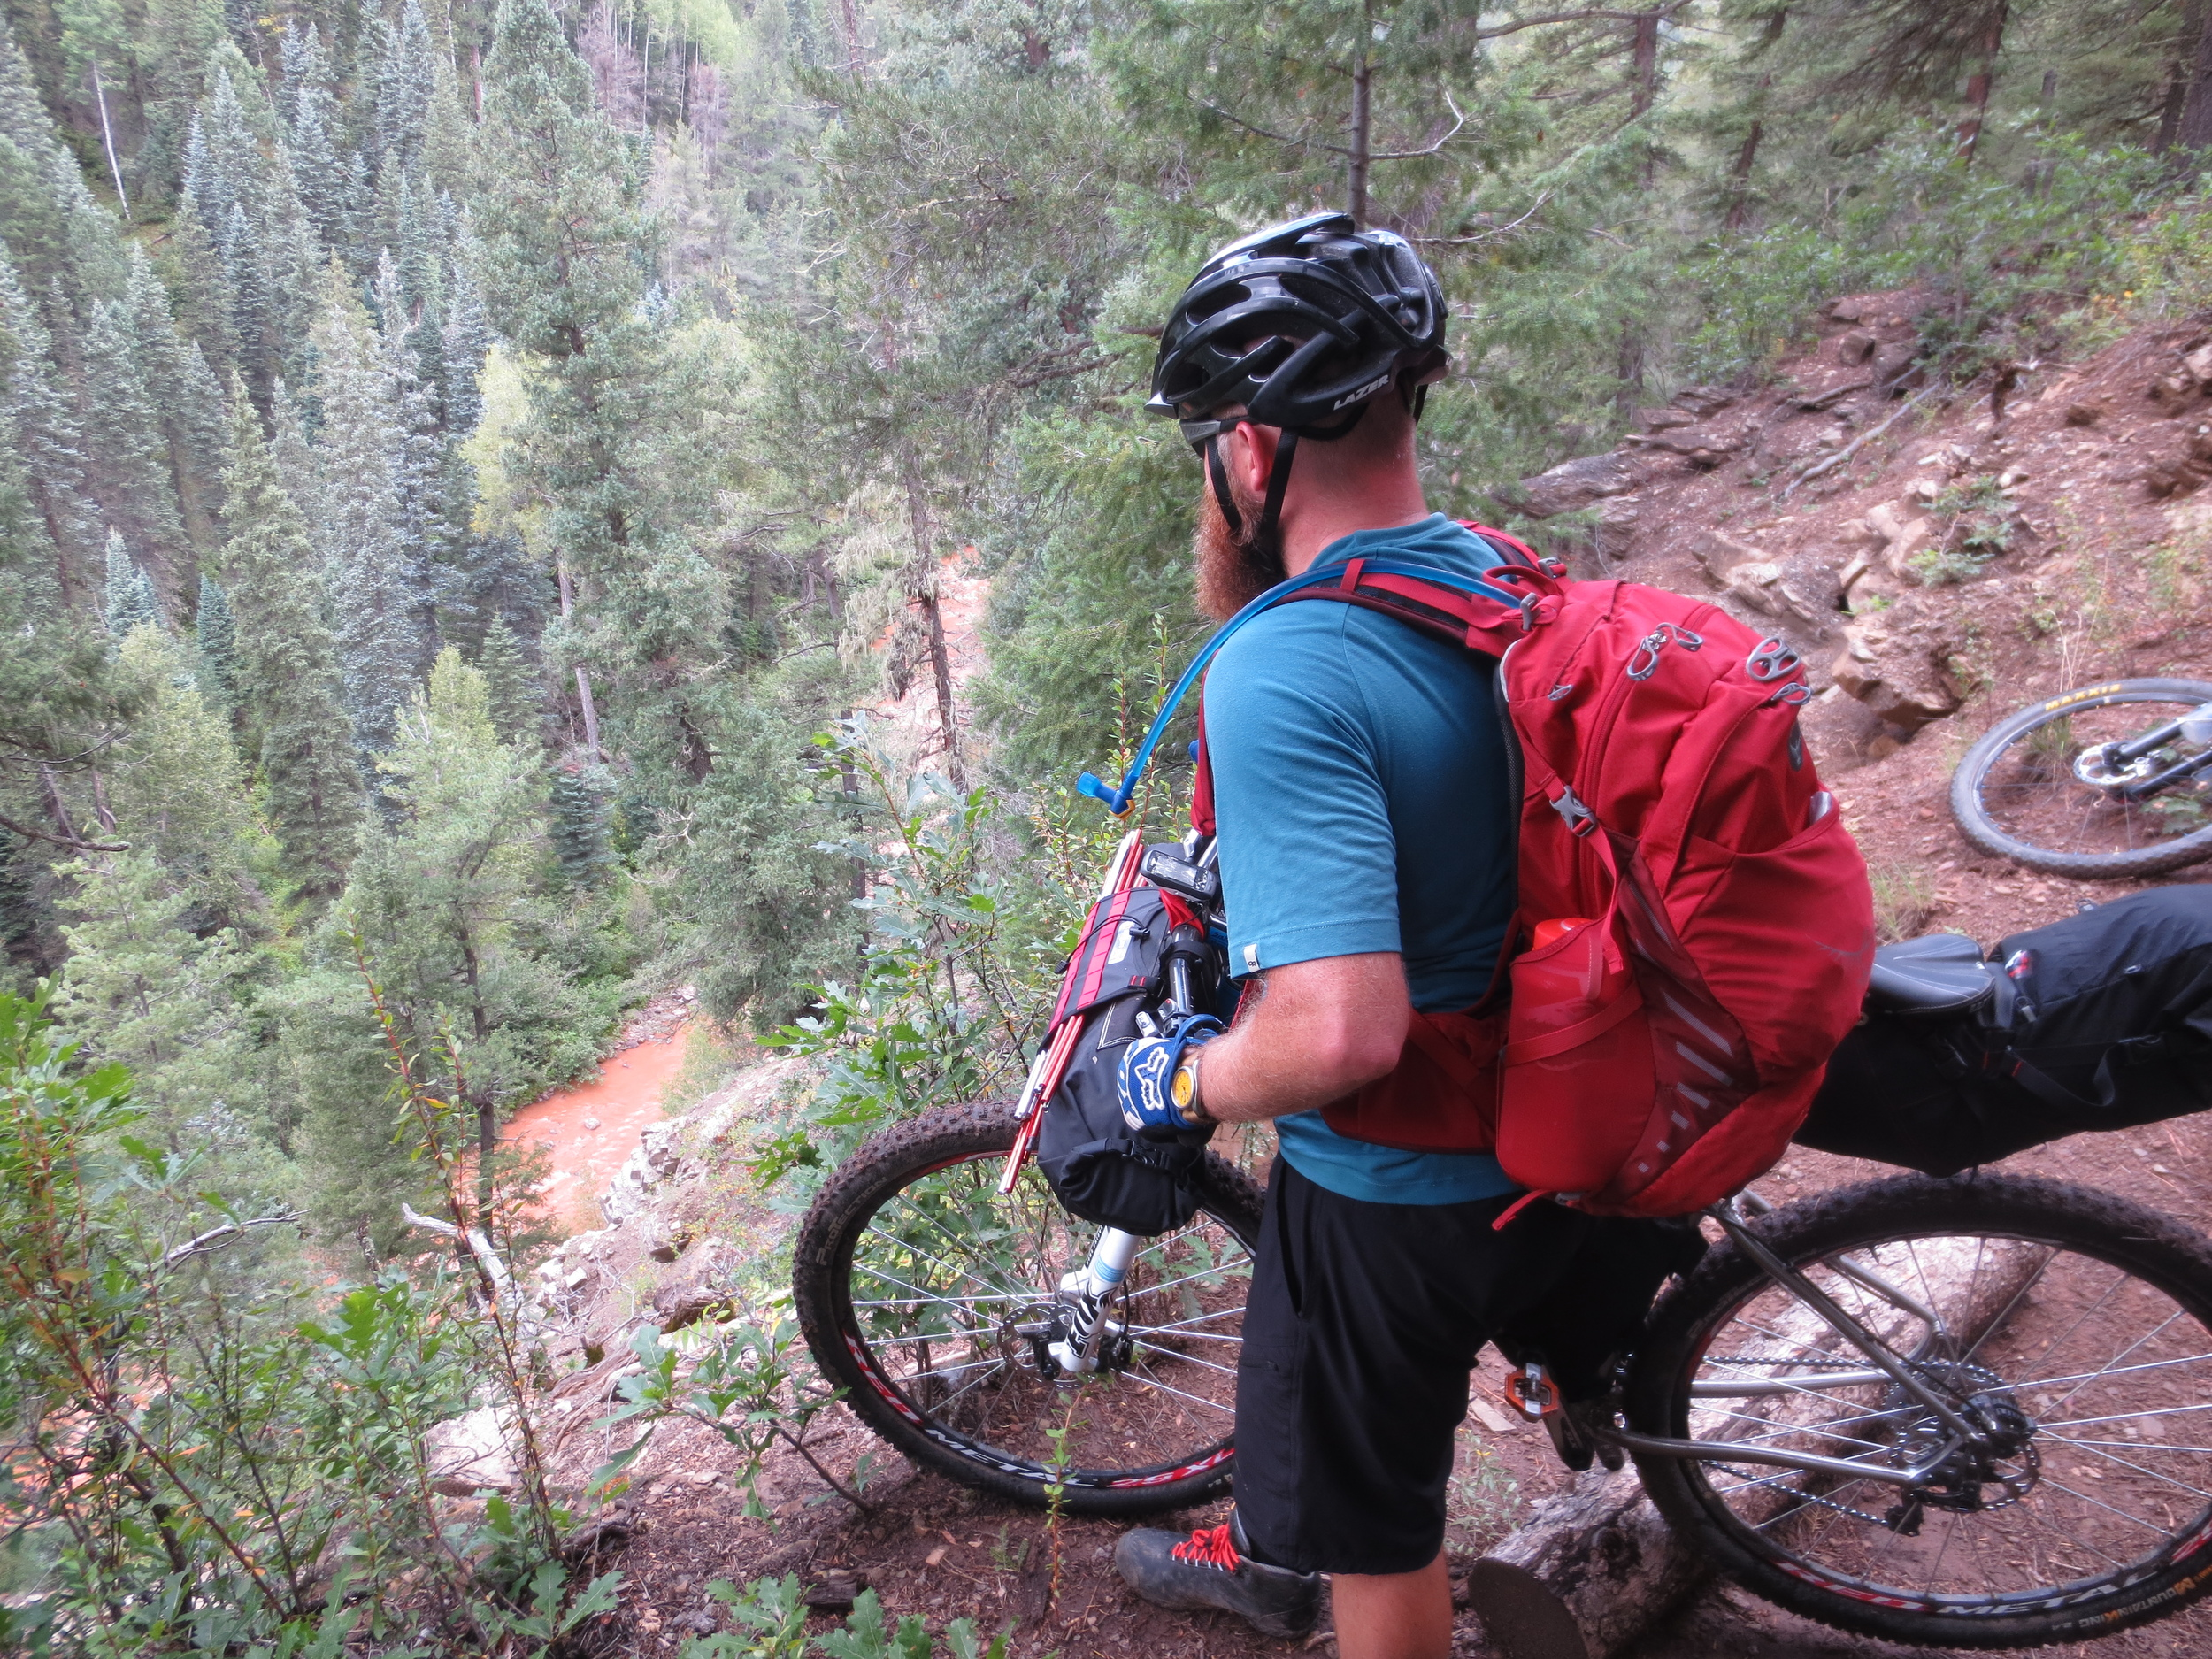 Brian overlooks Hermosa Creek, which had been running clear just twelve hours prior.